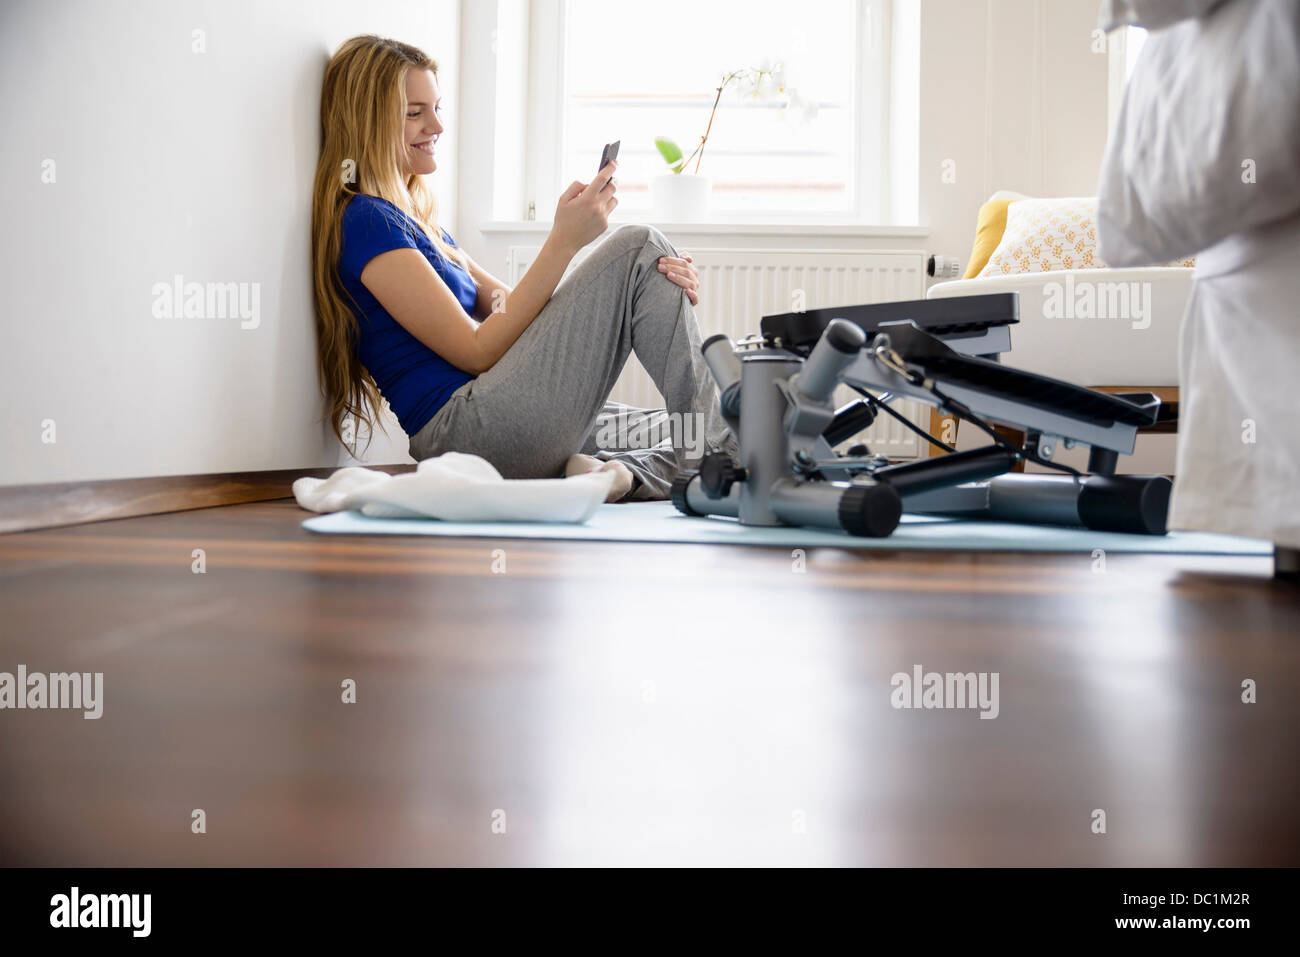 Young woman sitting on bedroom floor looking at smartphone - Stock Image